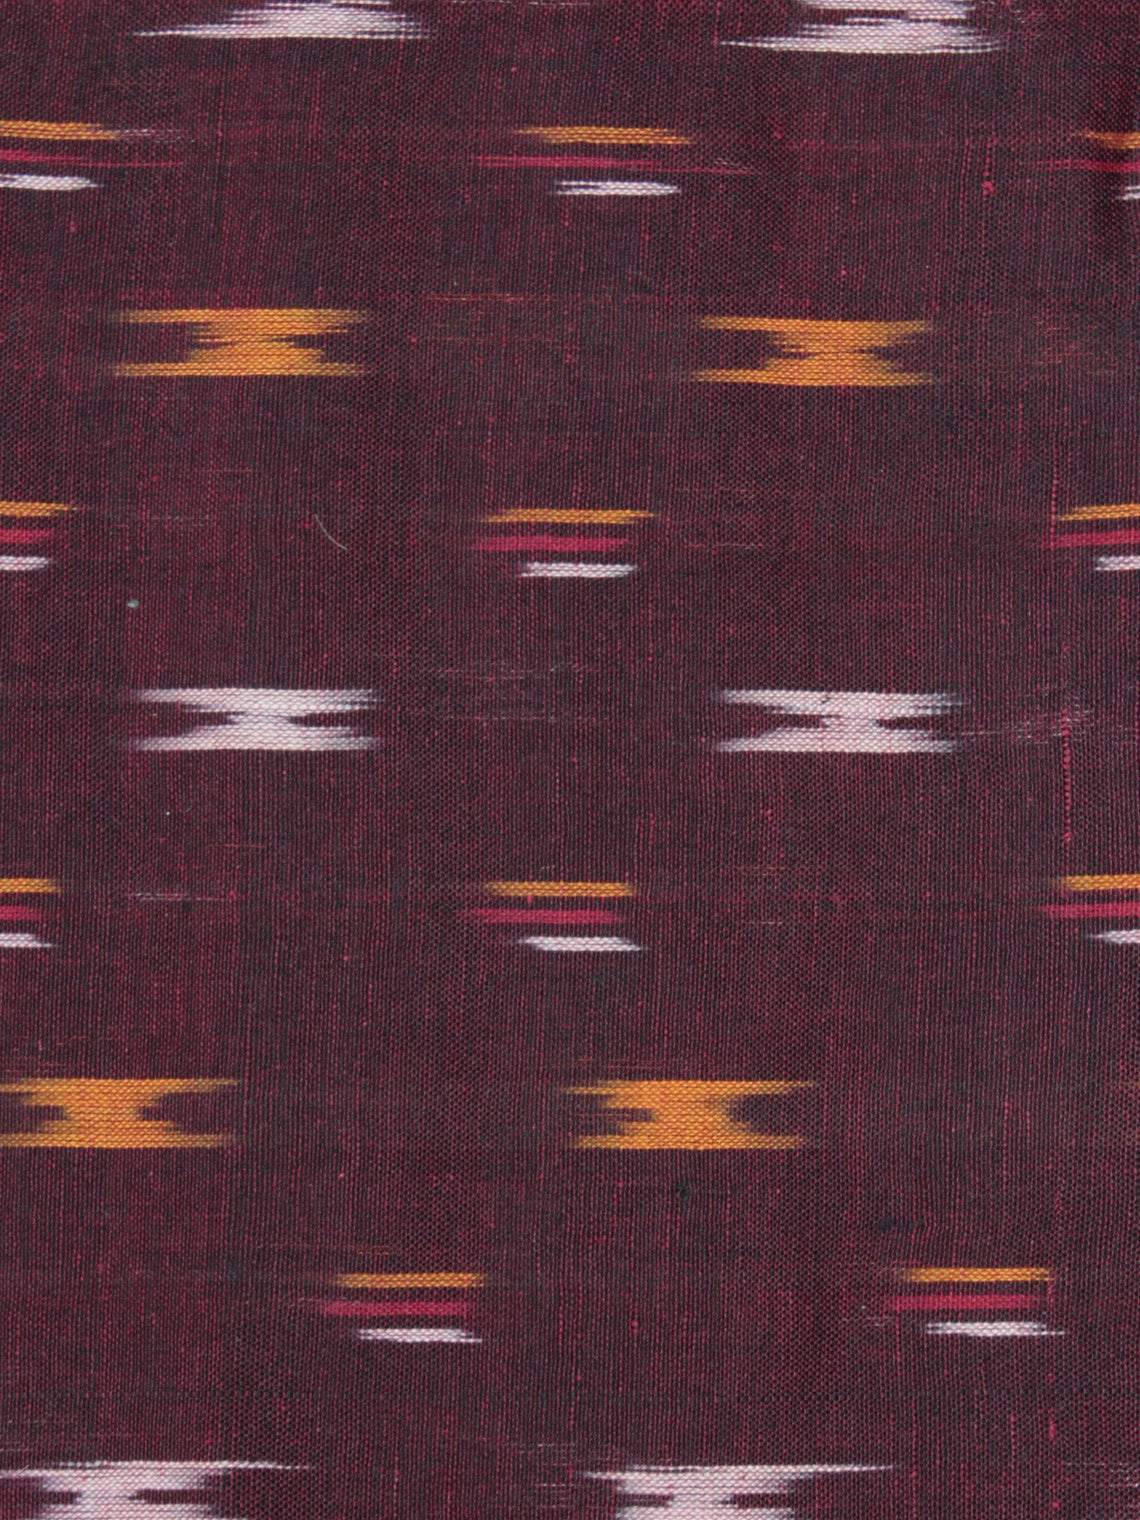 Maroon Yellow Red Ivory Pochampally Hand Weaved Ikat Fabric Per Meter - F0916731